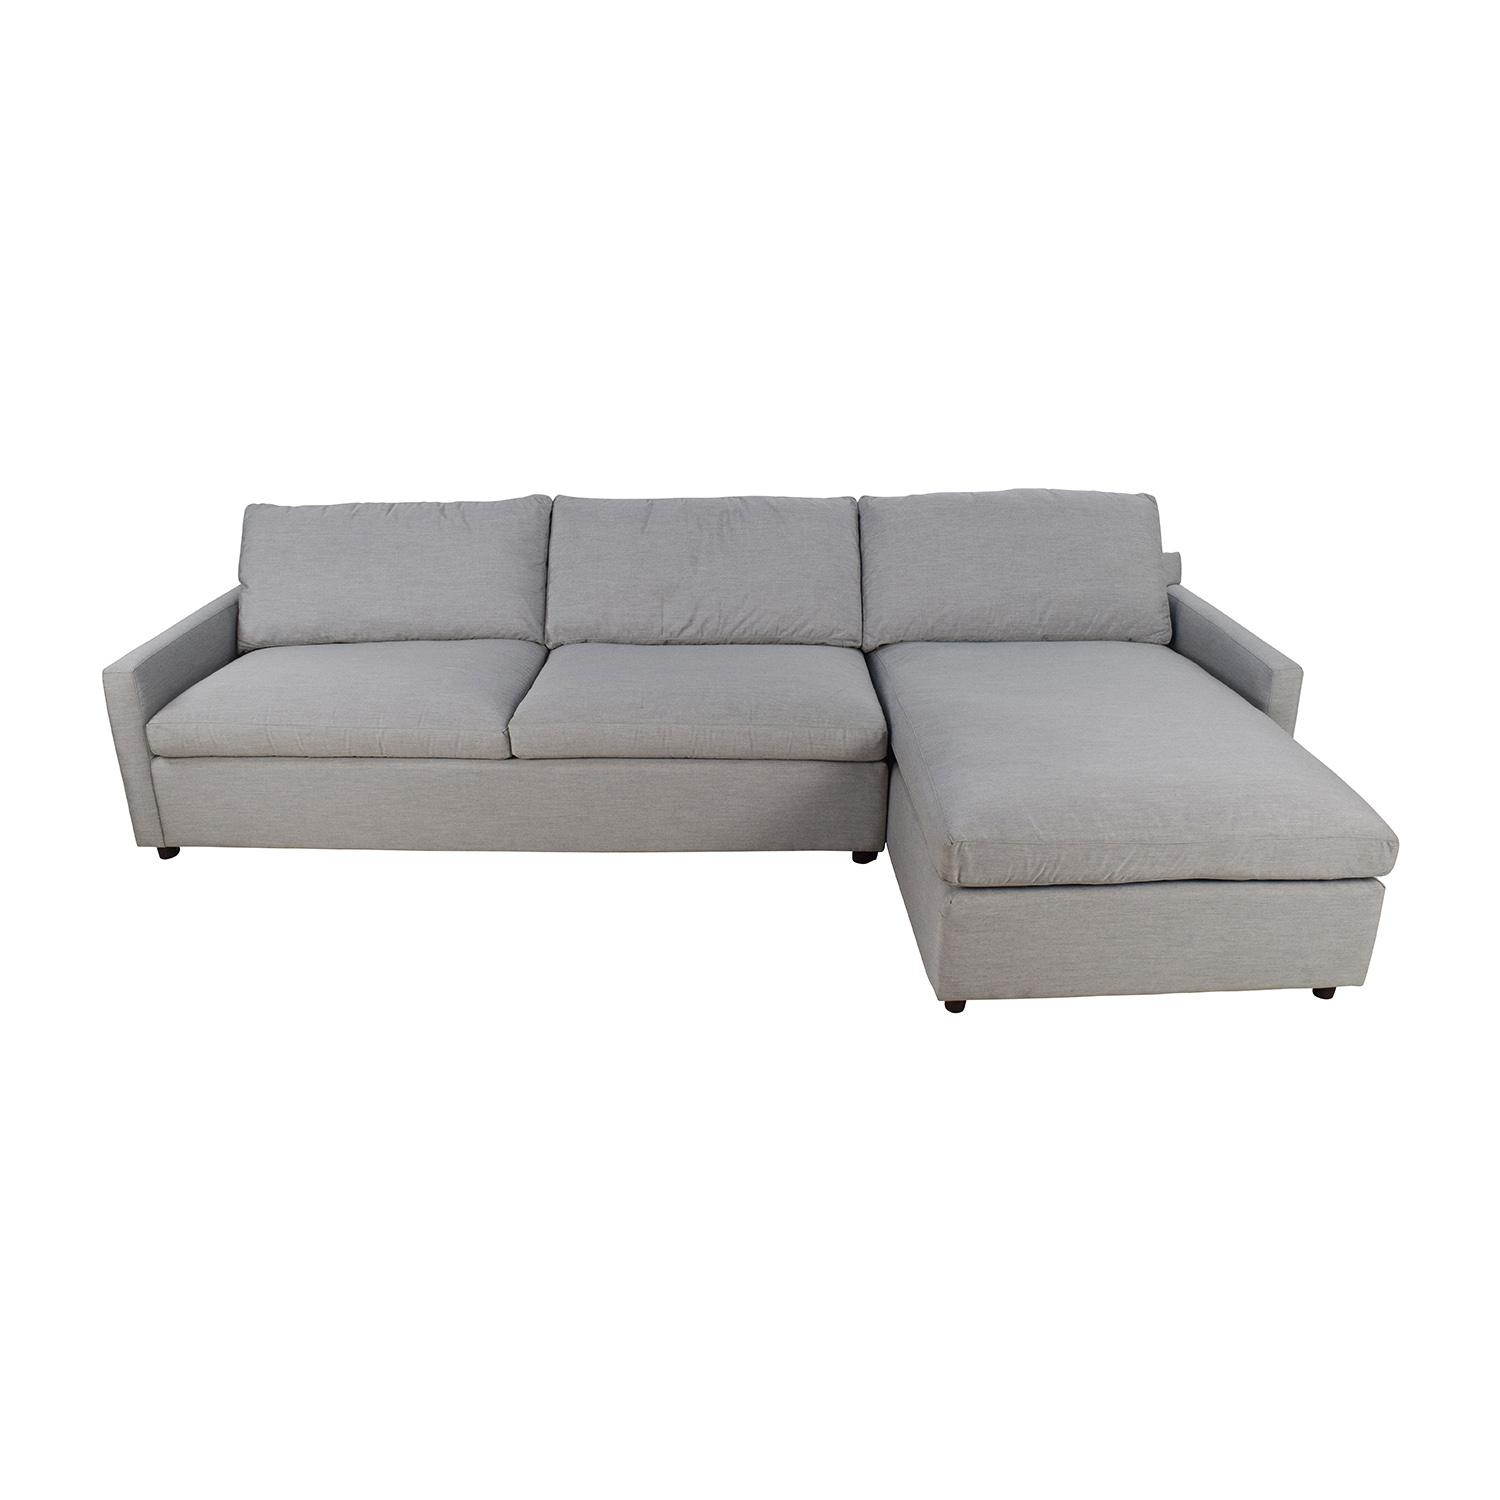 50% Off - Abc Carpet And Home Abc Carpet & Home Cobble Hill Lucali within Cobble Hill Sofas